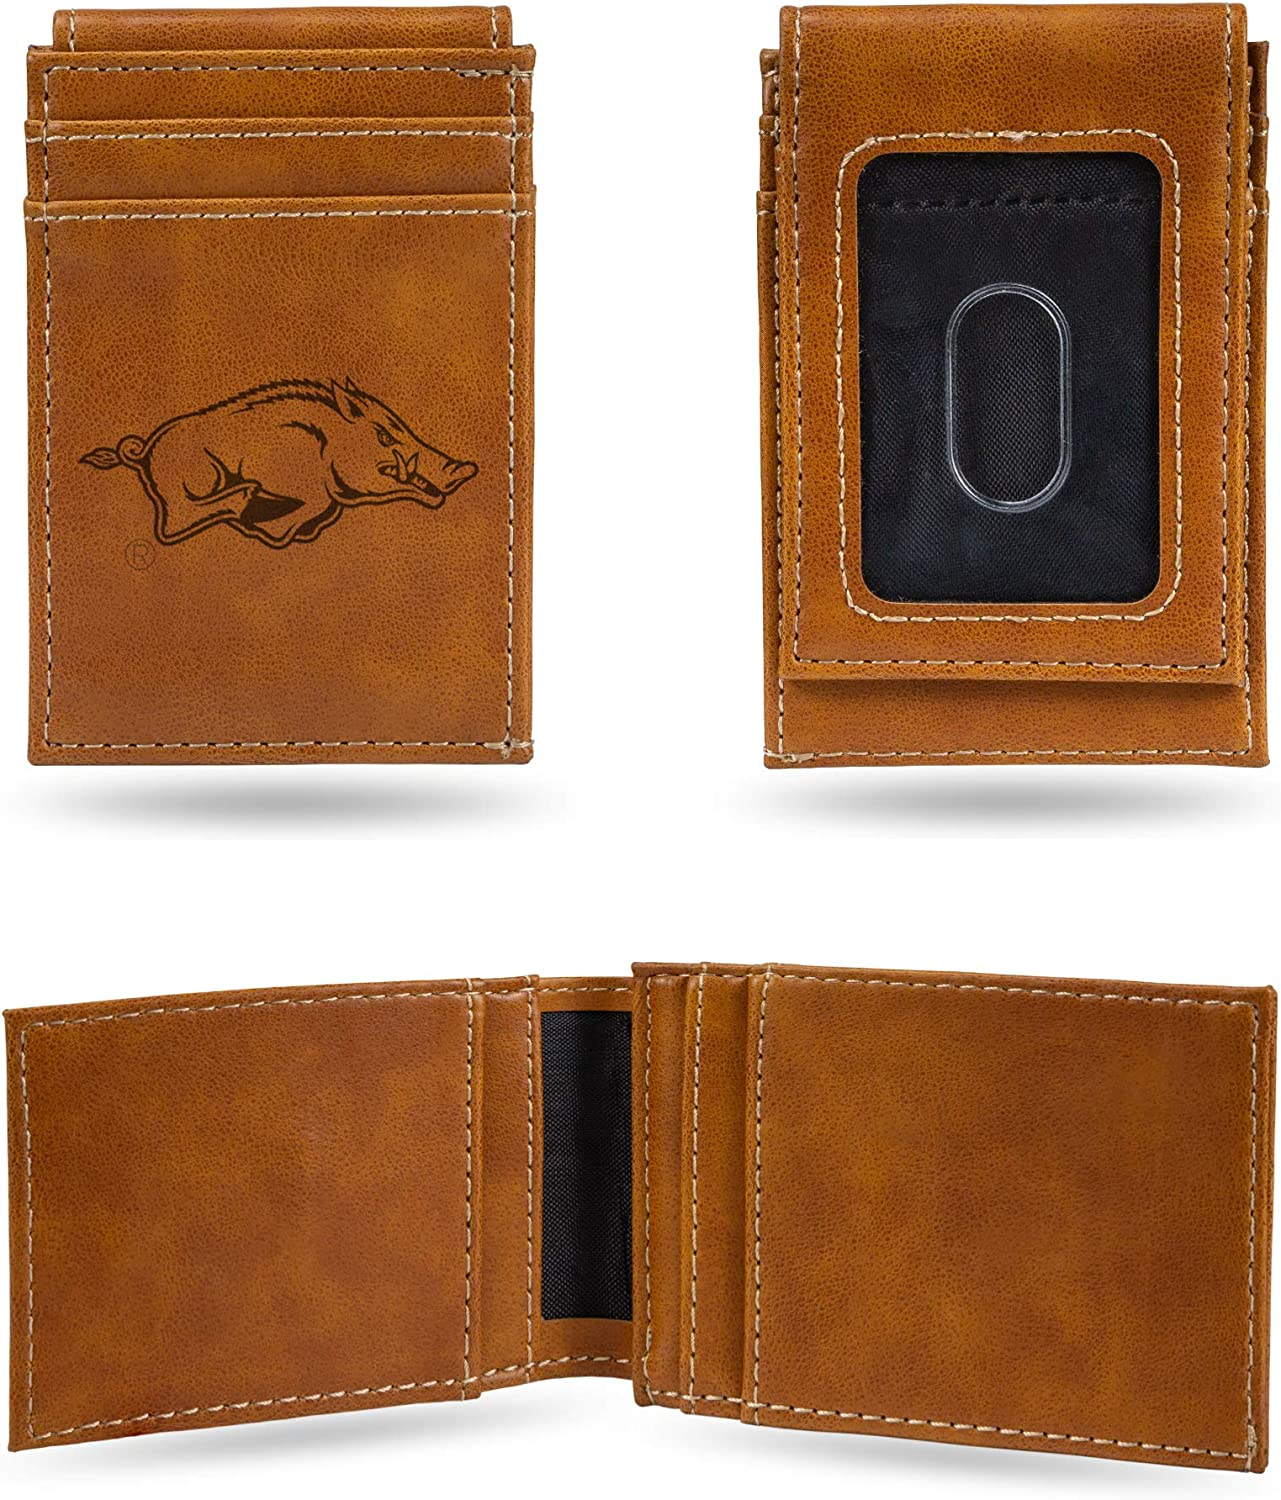 Rico Industries NCAA Laser Engraved Front Pocket Wallet, Brown